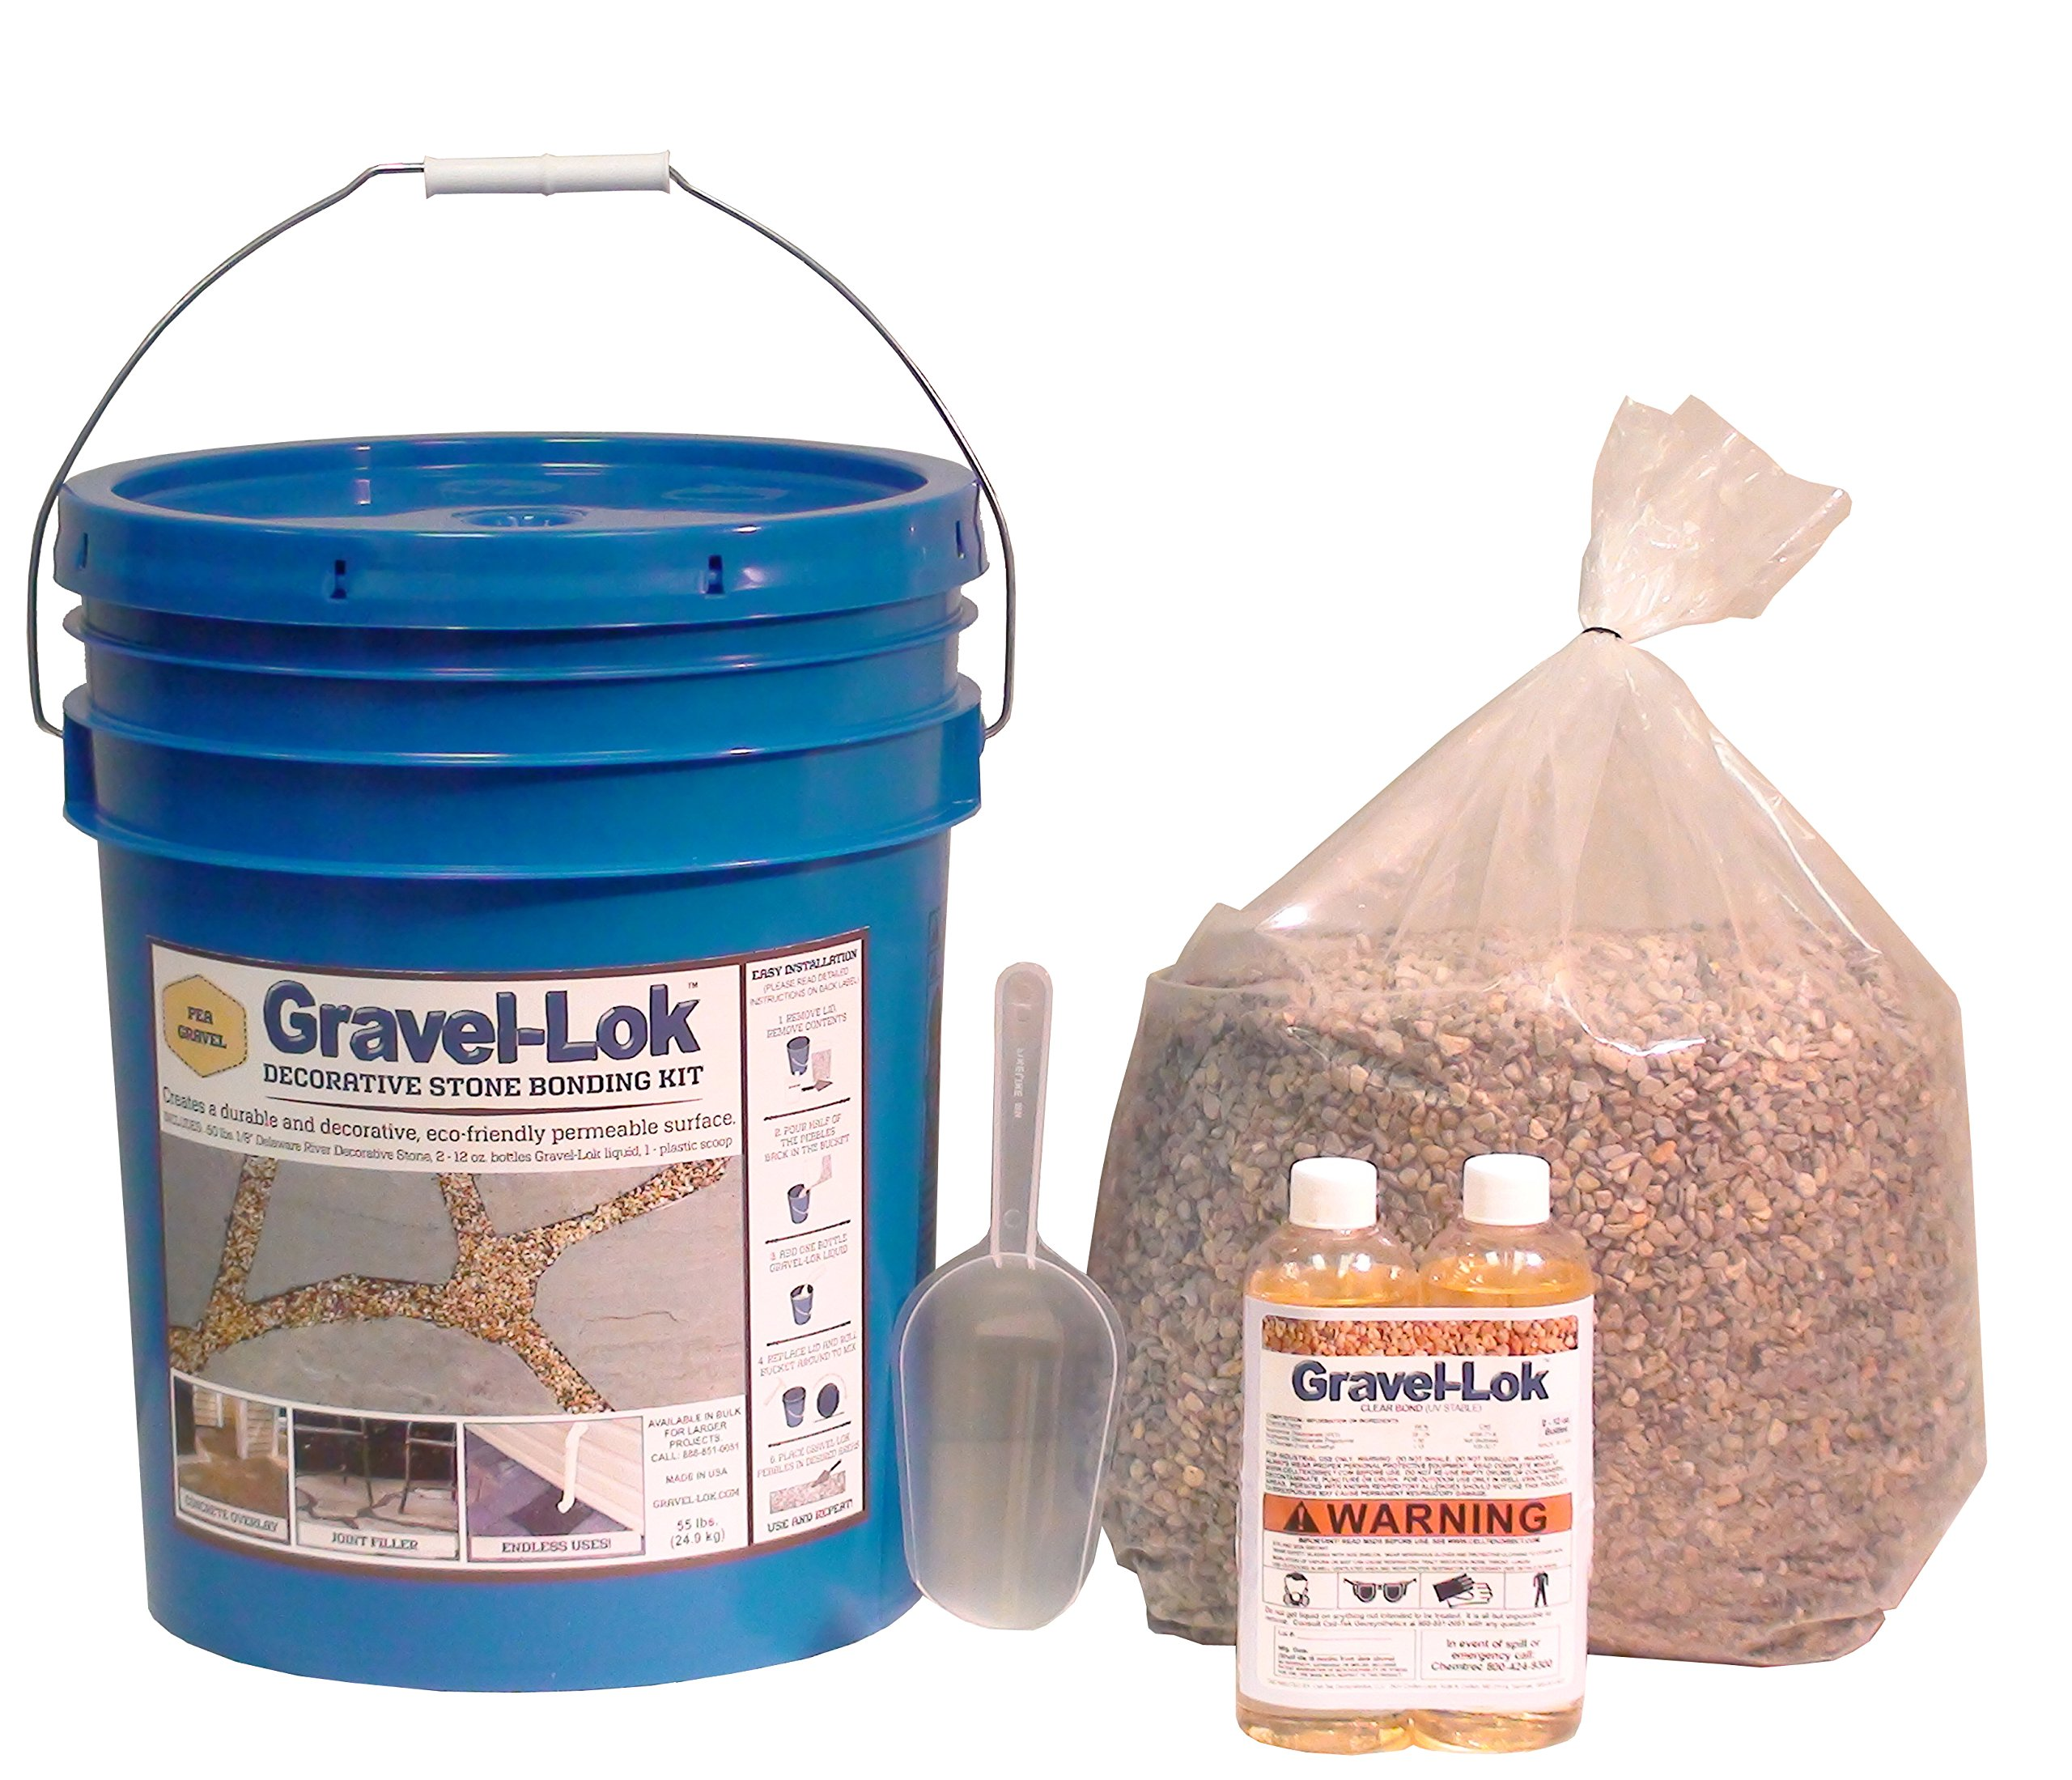 Gravel-Lok DIY Decorative Stone Bonding Kit - Pea Gravel by Gravel-Lok